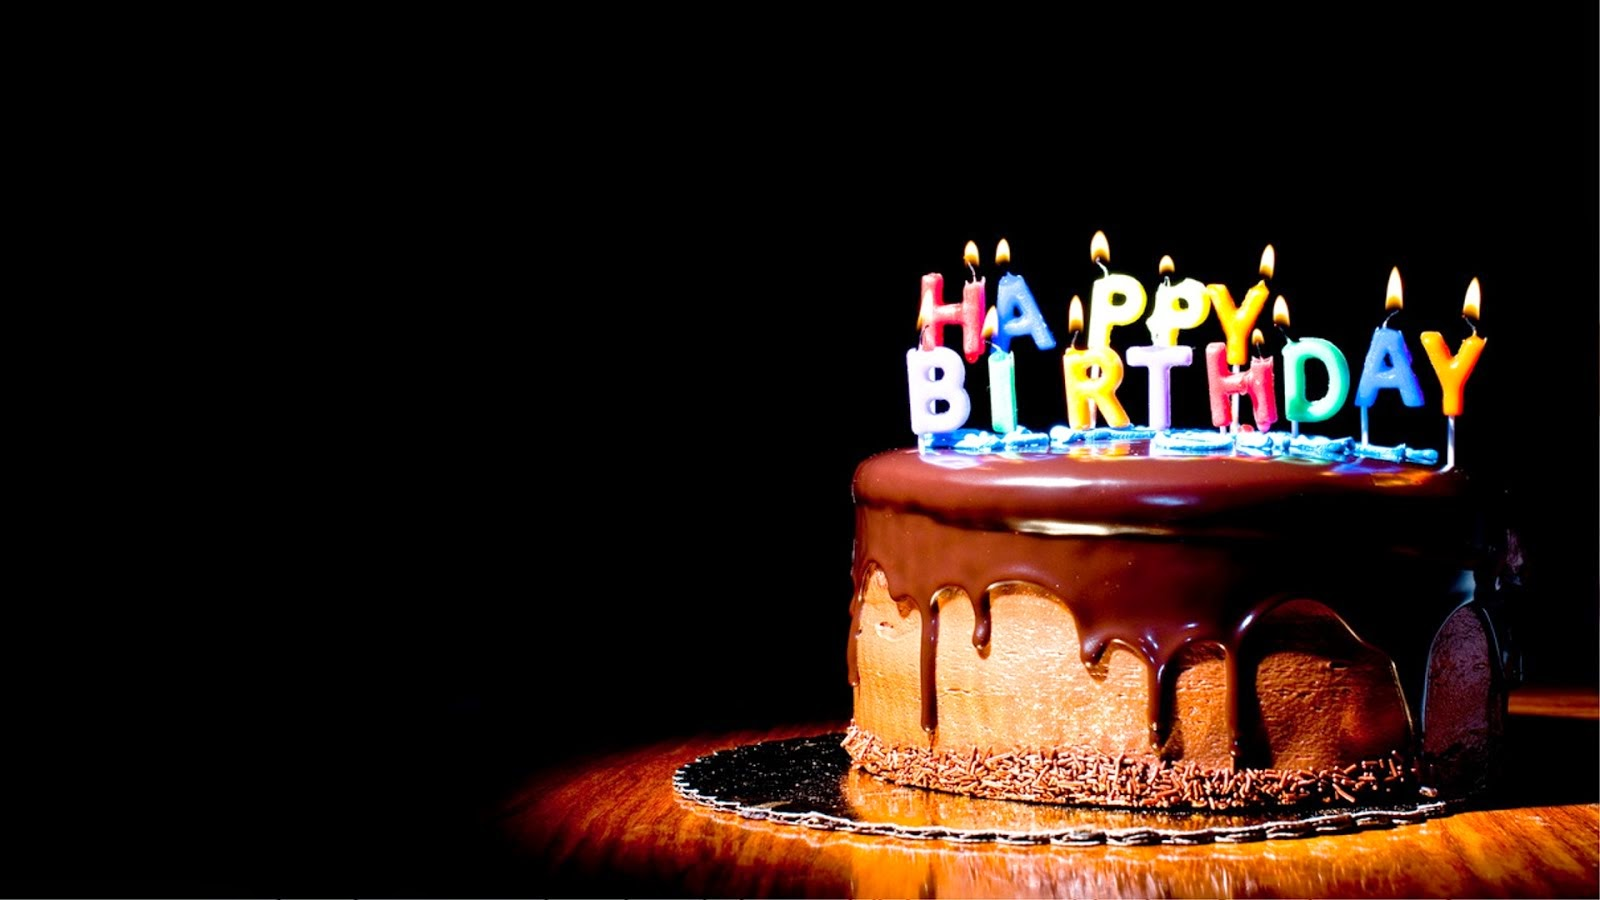 Happy Birthday Wallpapers Download High Definition Desktop 1600x900